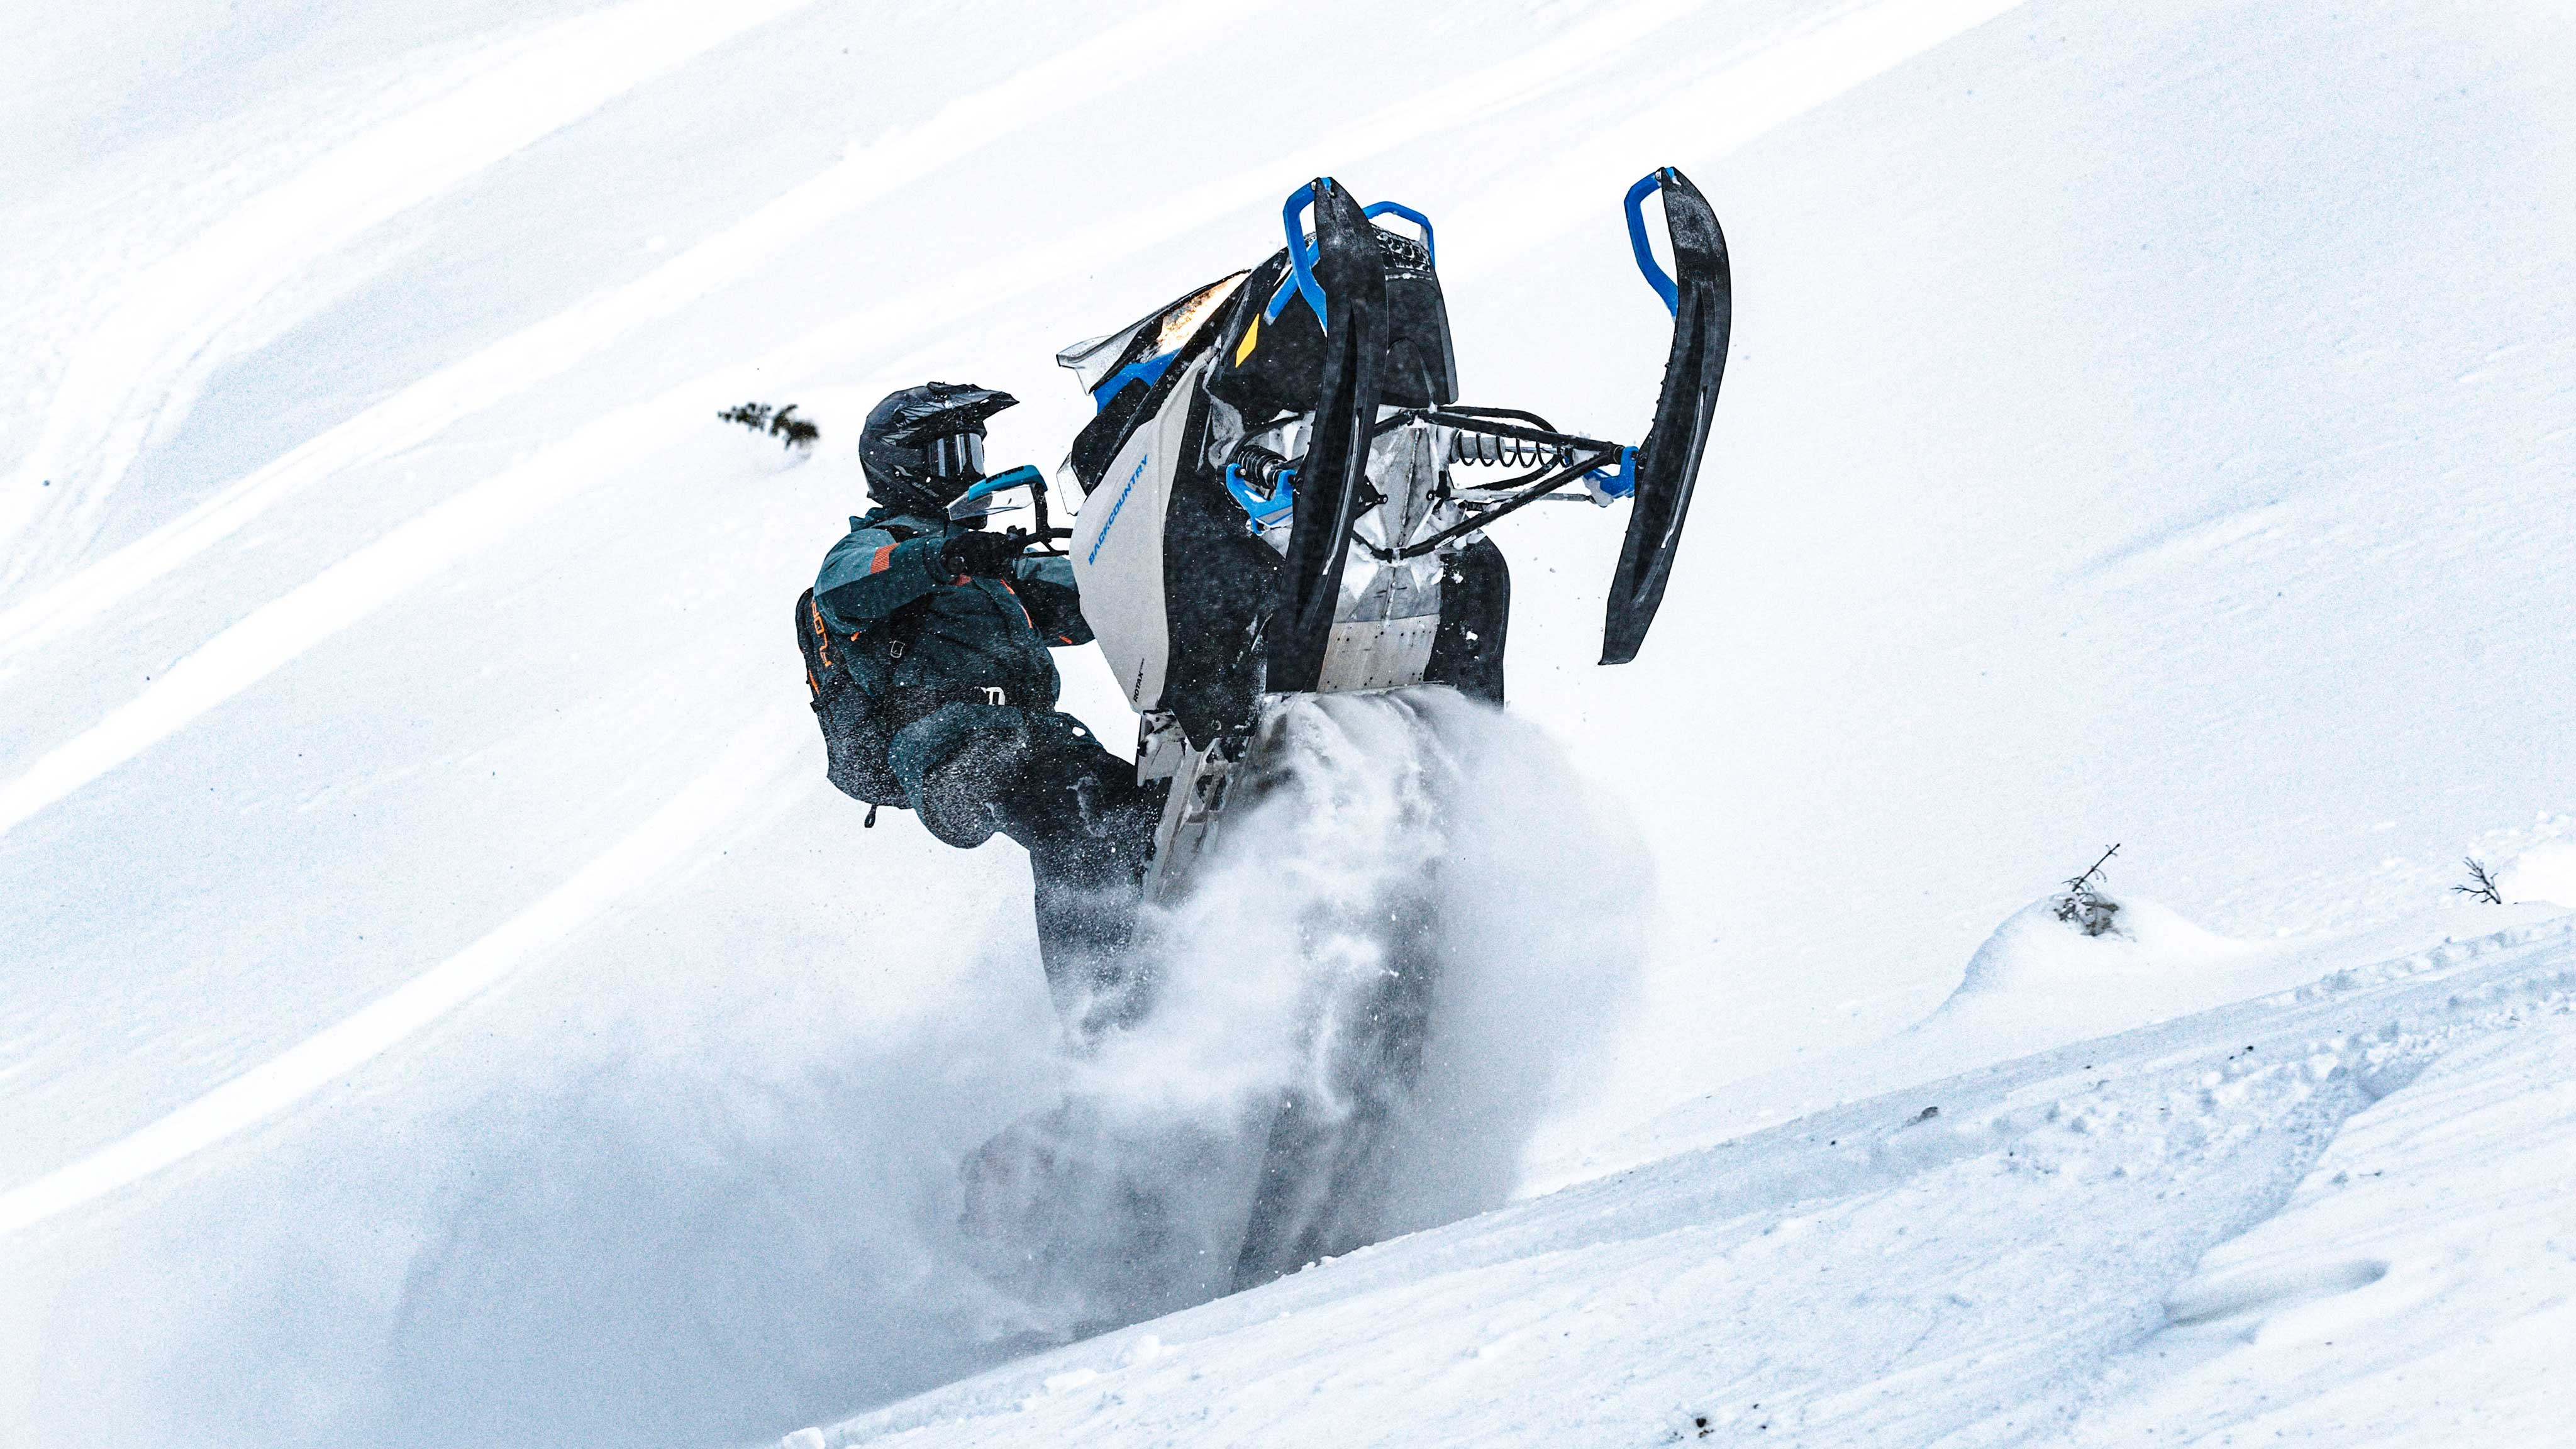 2022 Ski-Doo Backcountry: wheelies in Deep-Snow